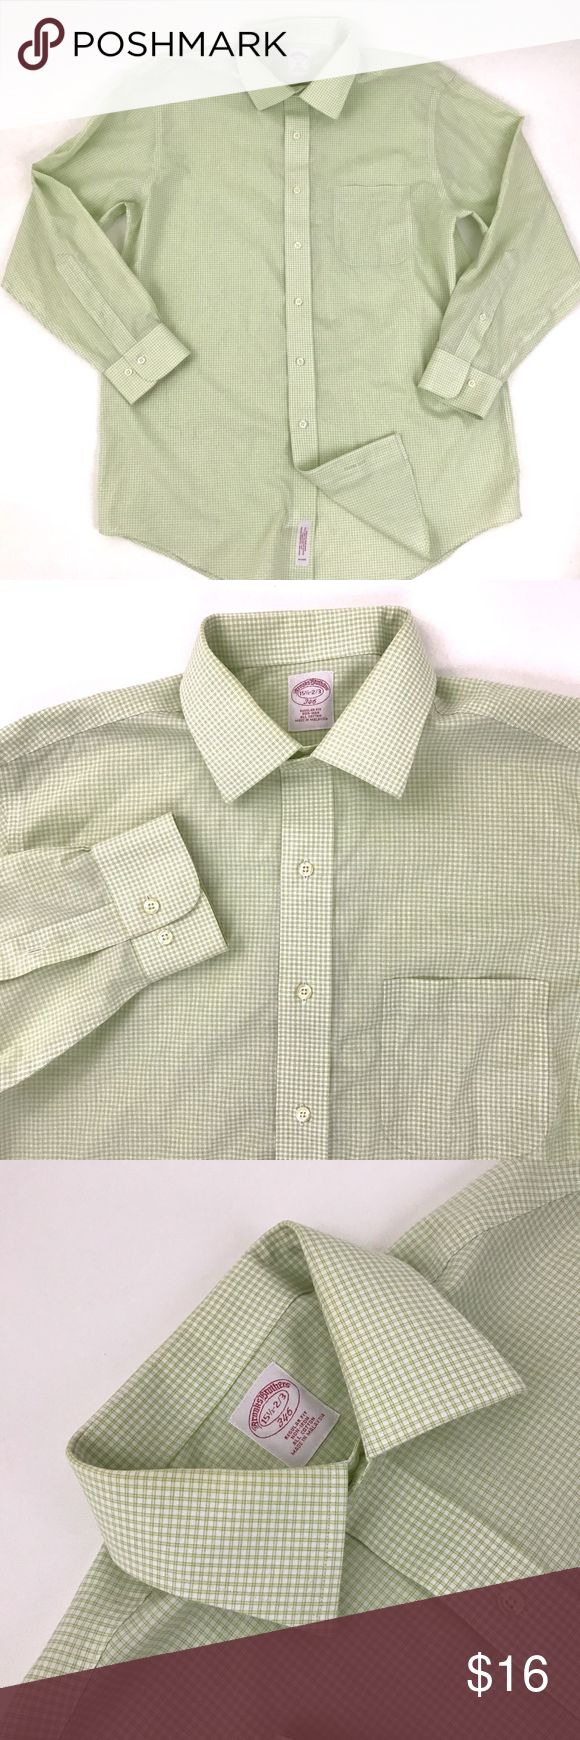 """Brooks Brothers Non Iron Dress Shirt Brand:Brooks Brothers  Tagged Size:15.5 - 2/3  Total Length:29.5""""  Sleeve Length:23""""  Underarm to Underarm:23""""  Condition: pre owned, in Great Shape! No Holes, Stains or Fading  Non Iron. Regular Fit. Pocket on Chest.  Item comes from a pet free/smoke free clean environment  please contact me for any additional questions  I offer combined shipping Brooks Brothers Shirts Dress Shirts"""